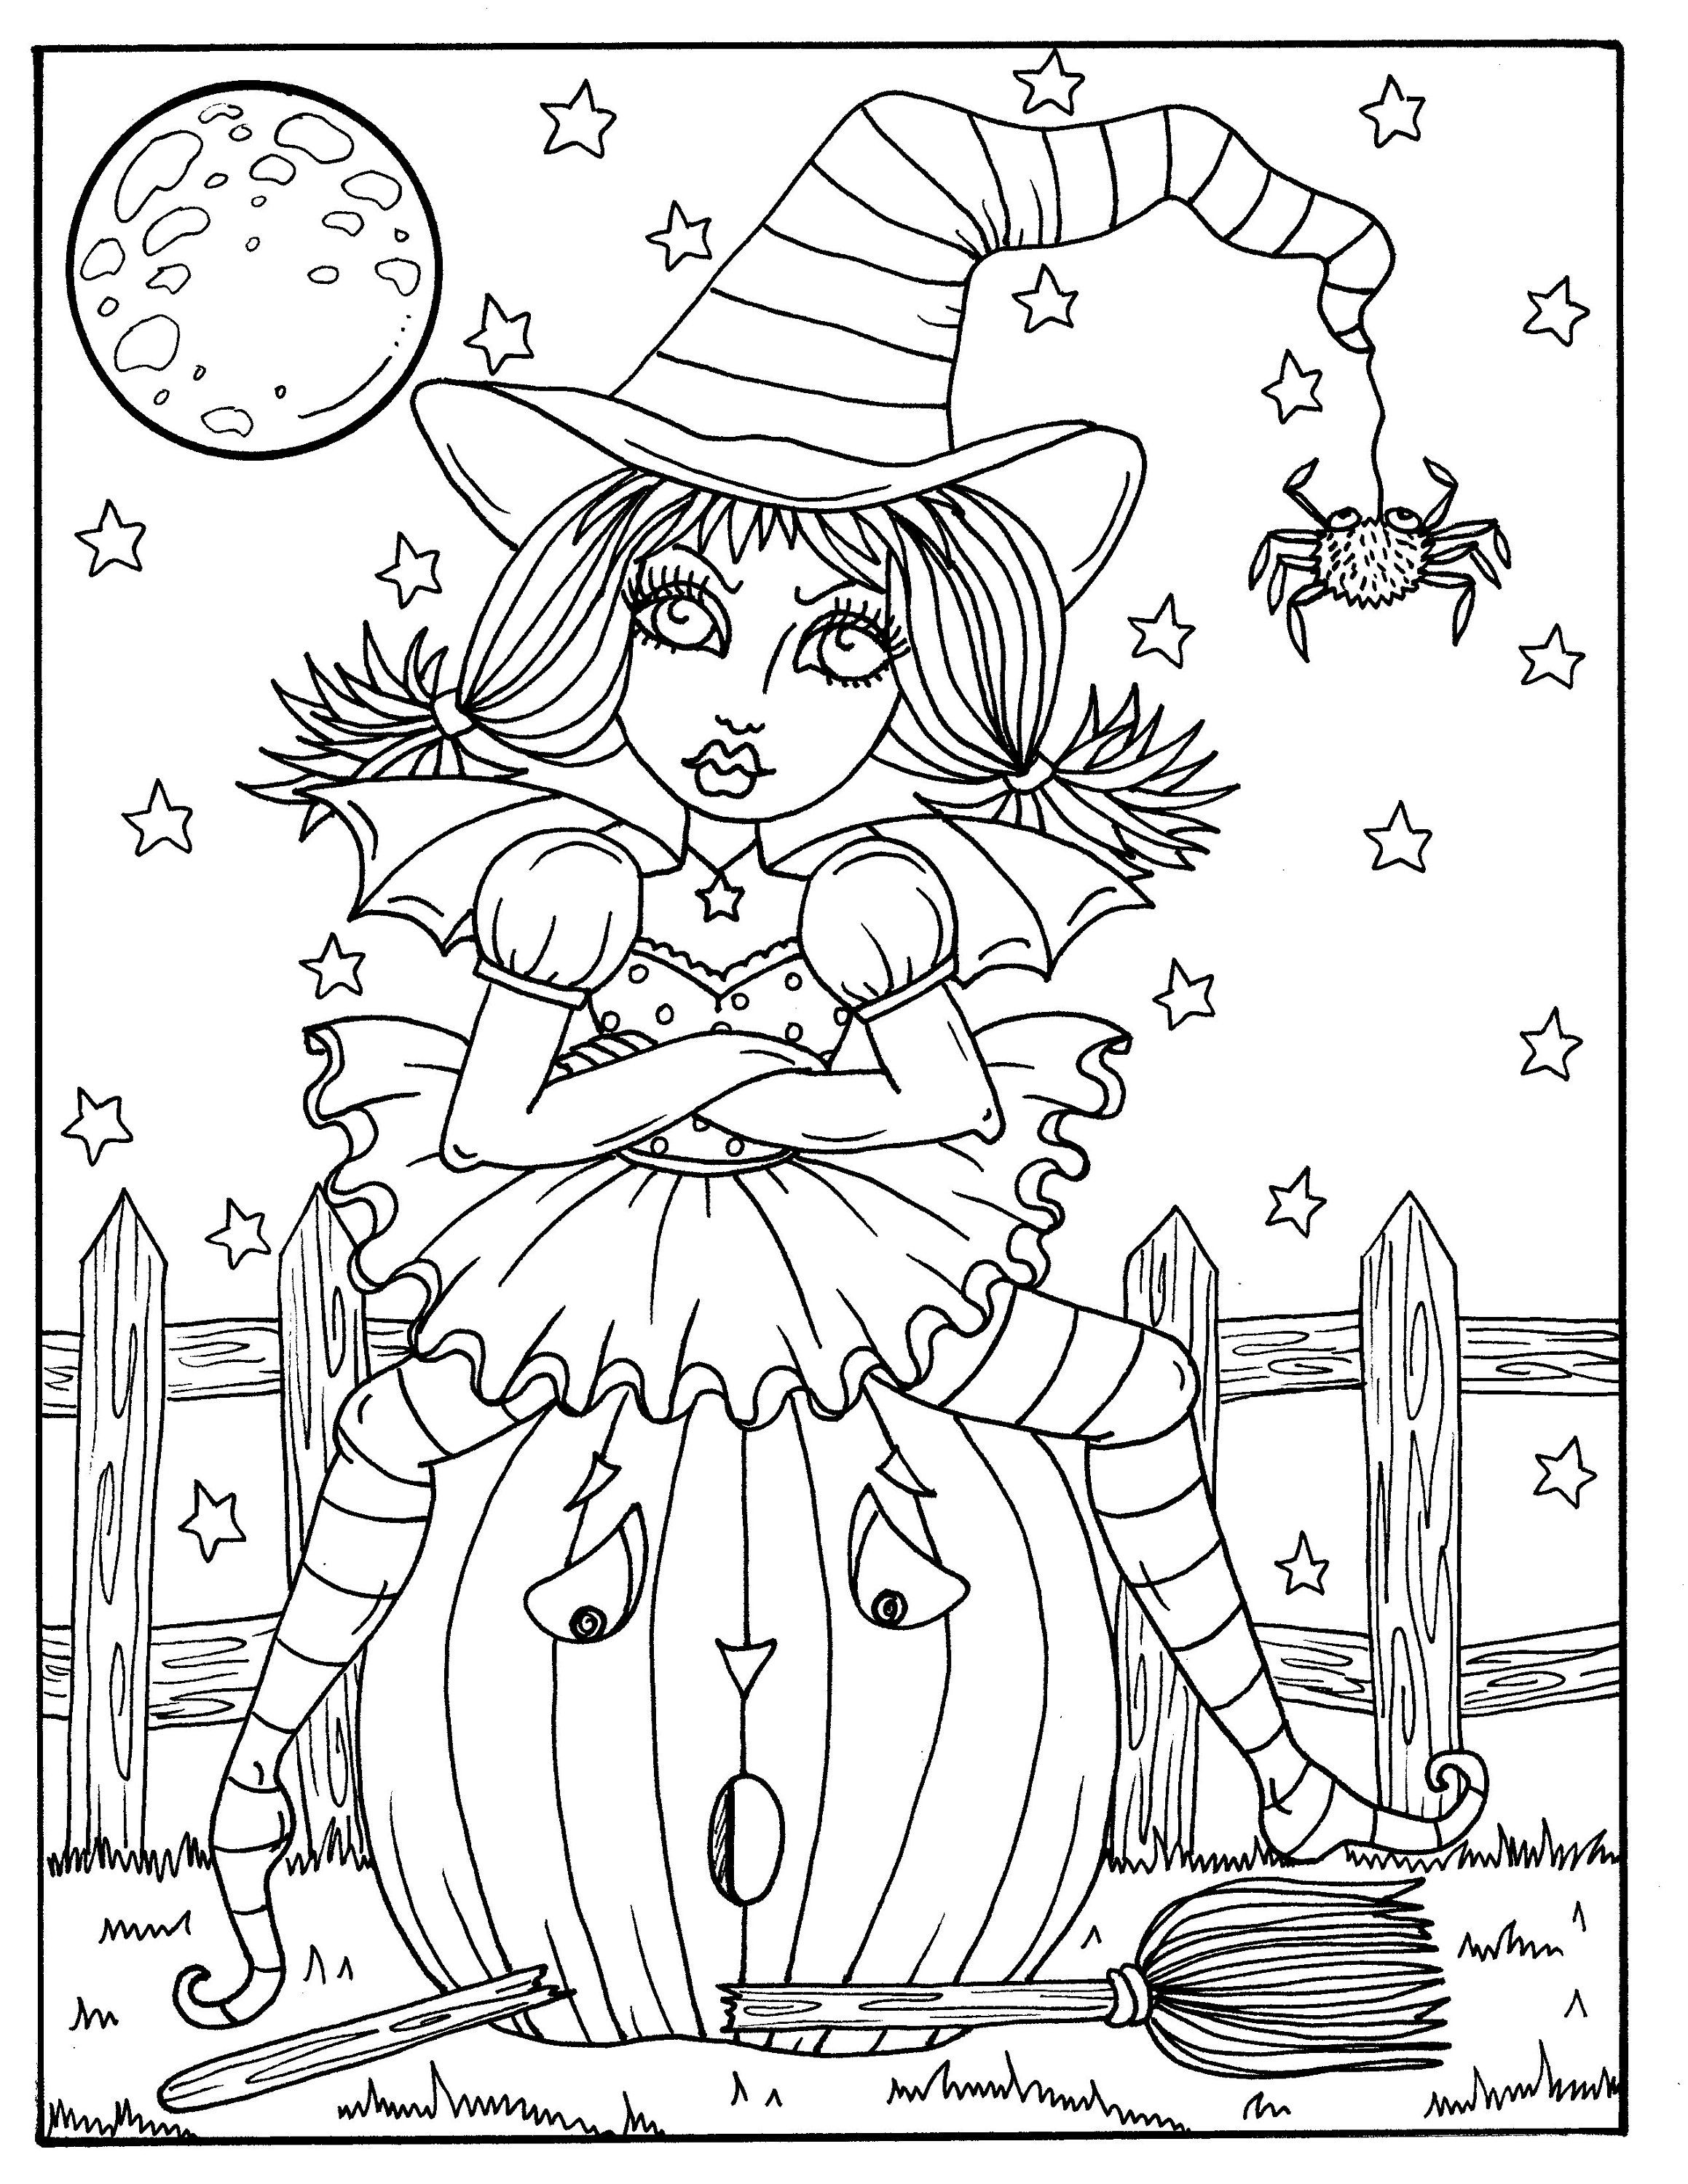 Hocus Pocus Witches Printable Coloring Pages For Adults Etsy Halloween Coloring Book Halloween Coloring Fall Coloring Pages